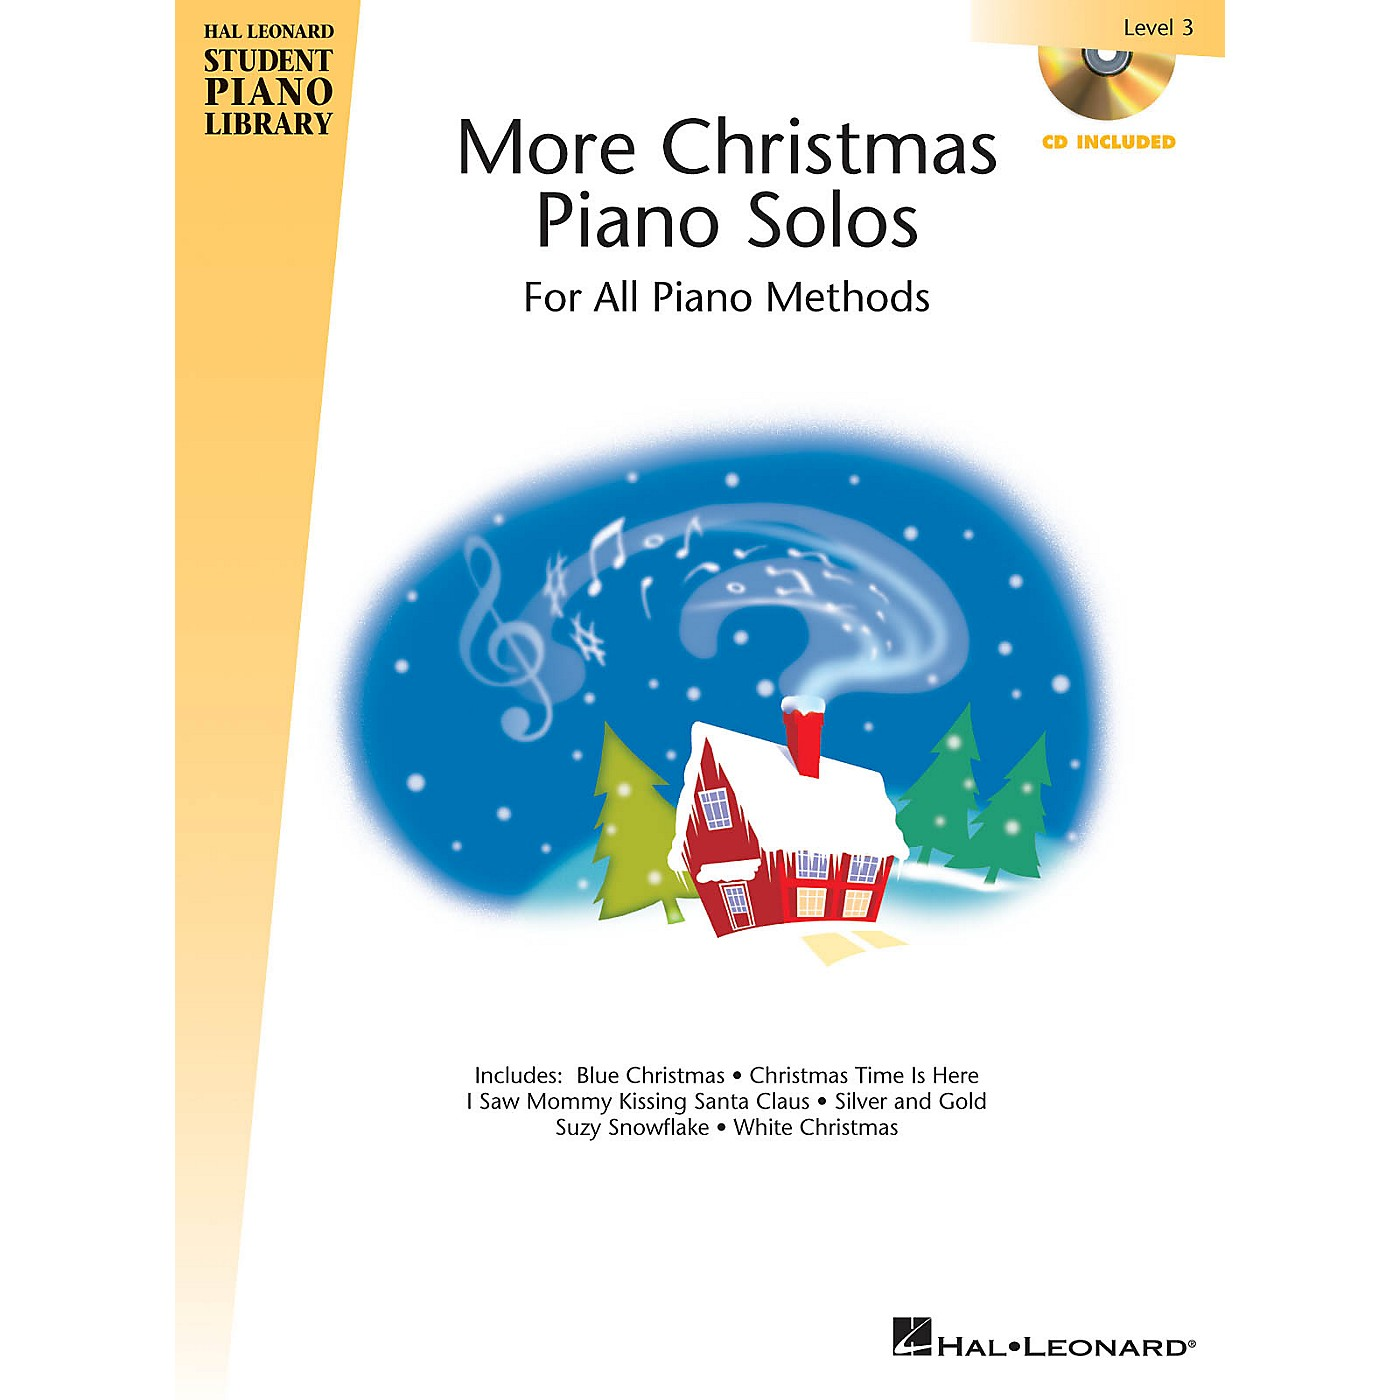 Hal Leonard More Christmas Piano Solos - Level 3 Piano Library Series Book with CD thumbnail